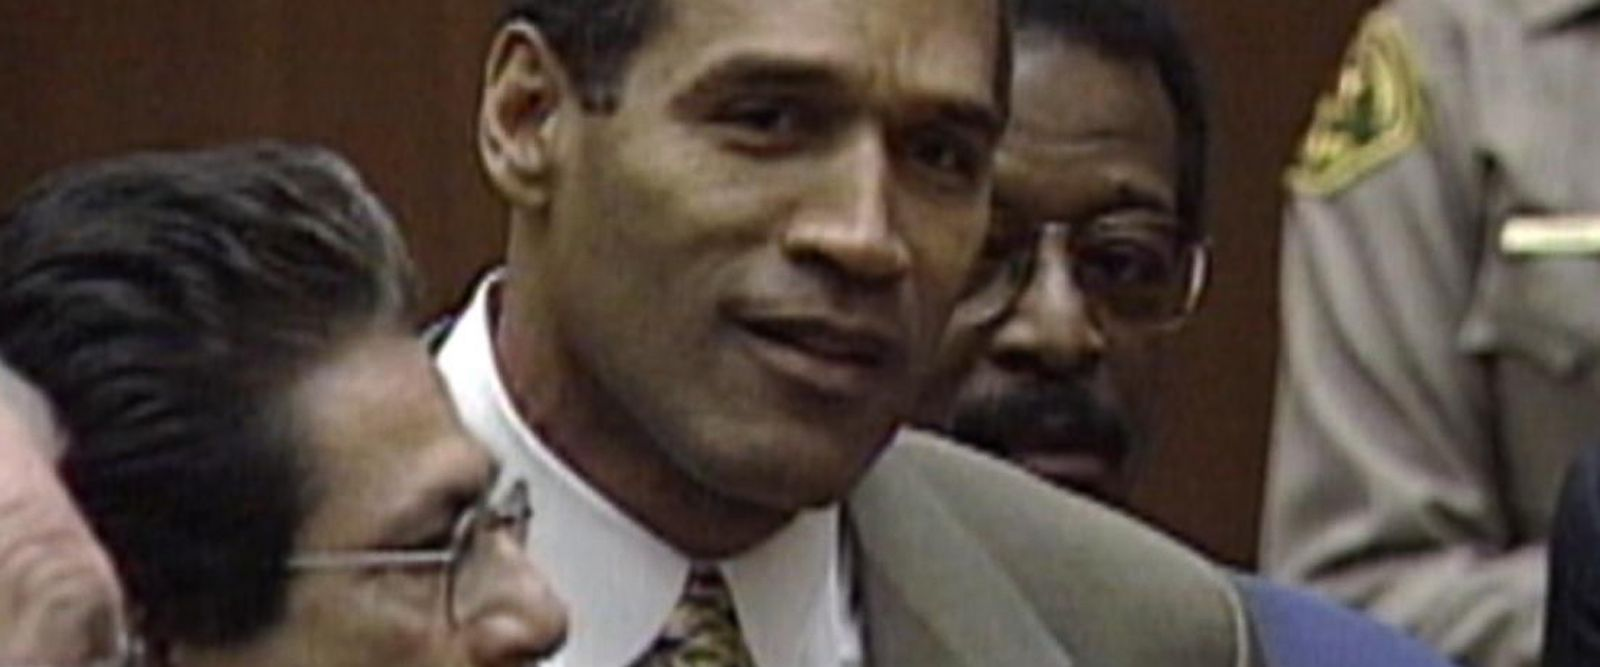 New Insights Revealed into OJ Simpson and Trial of the Century